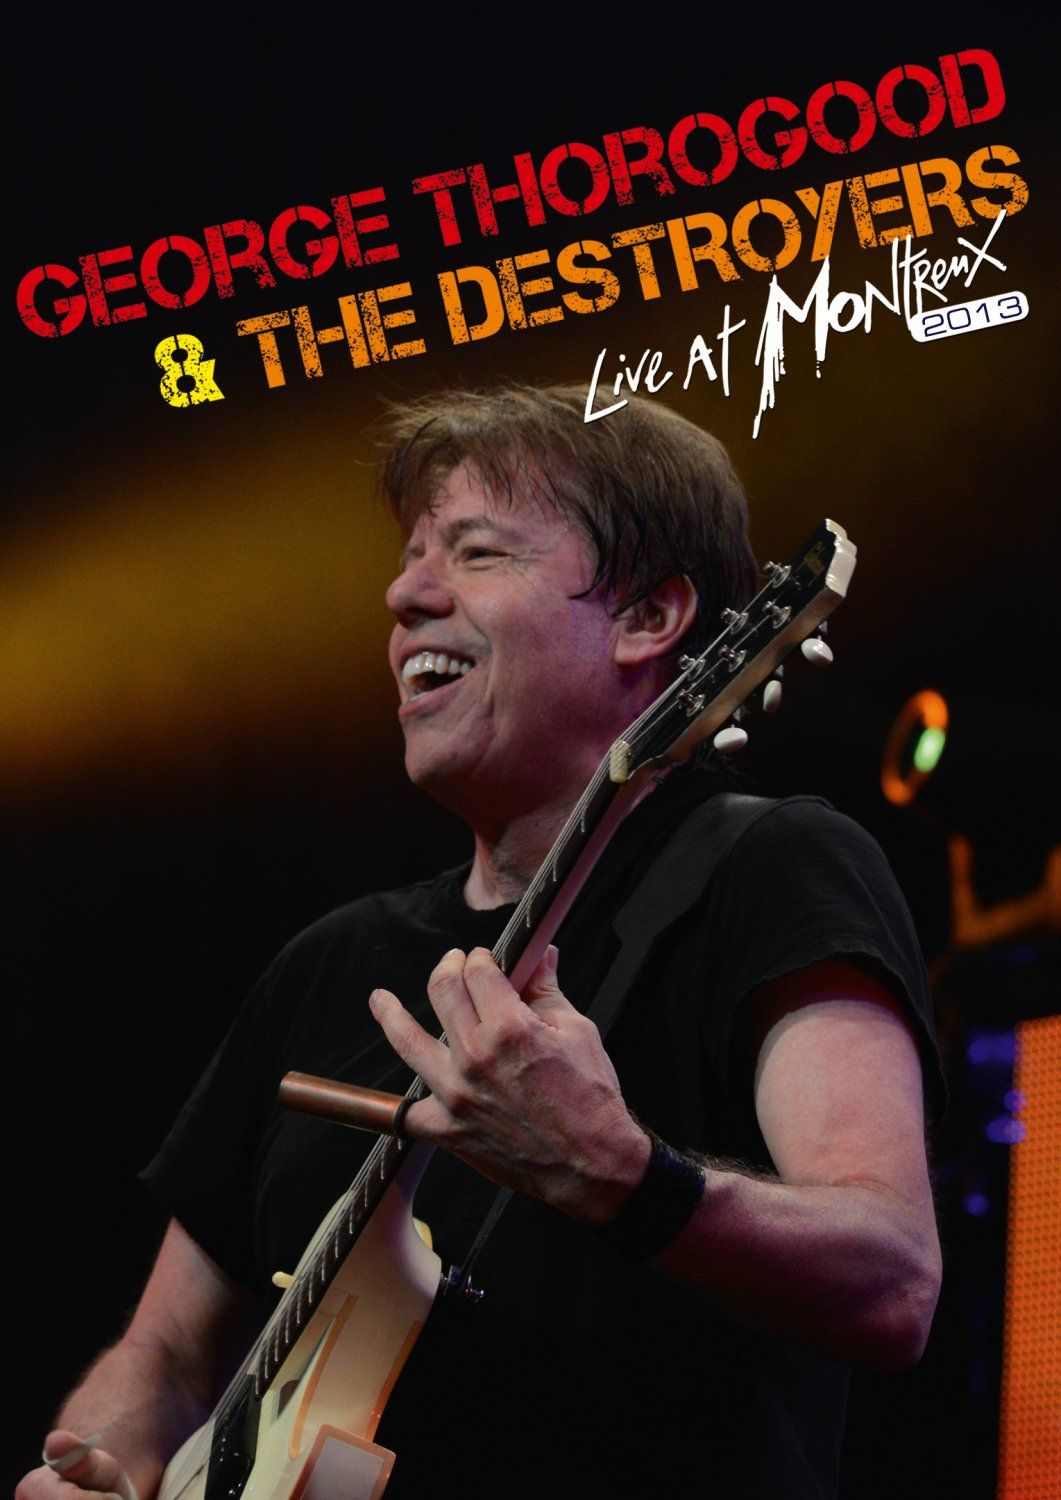 George Thorogood & the Destroyers: Live at Montreux 2013